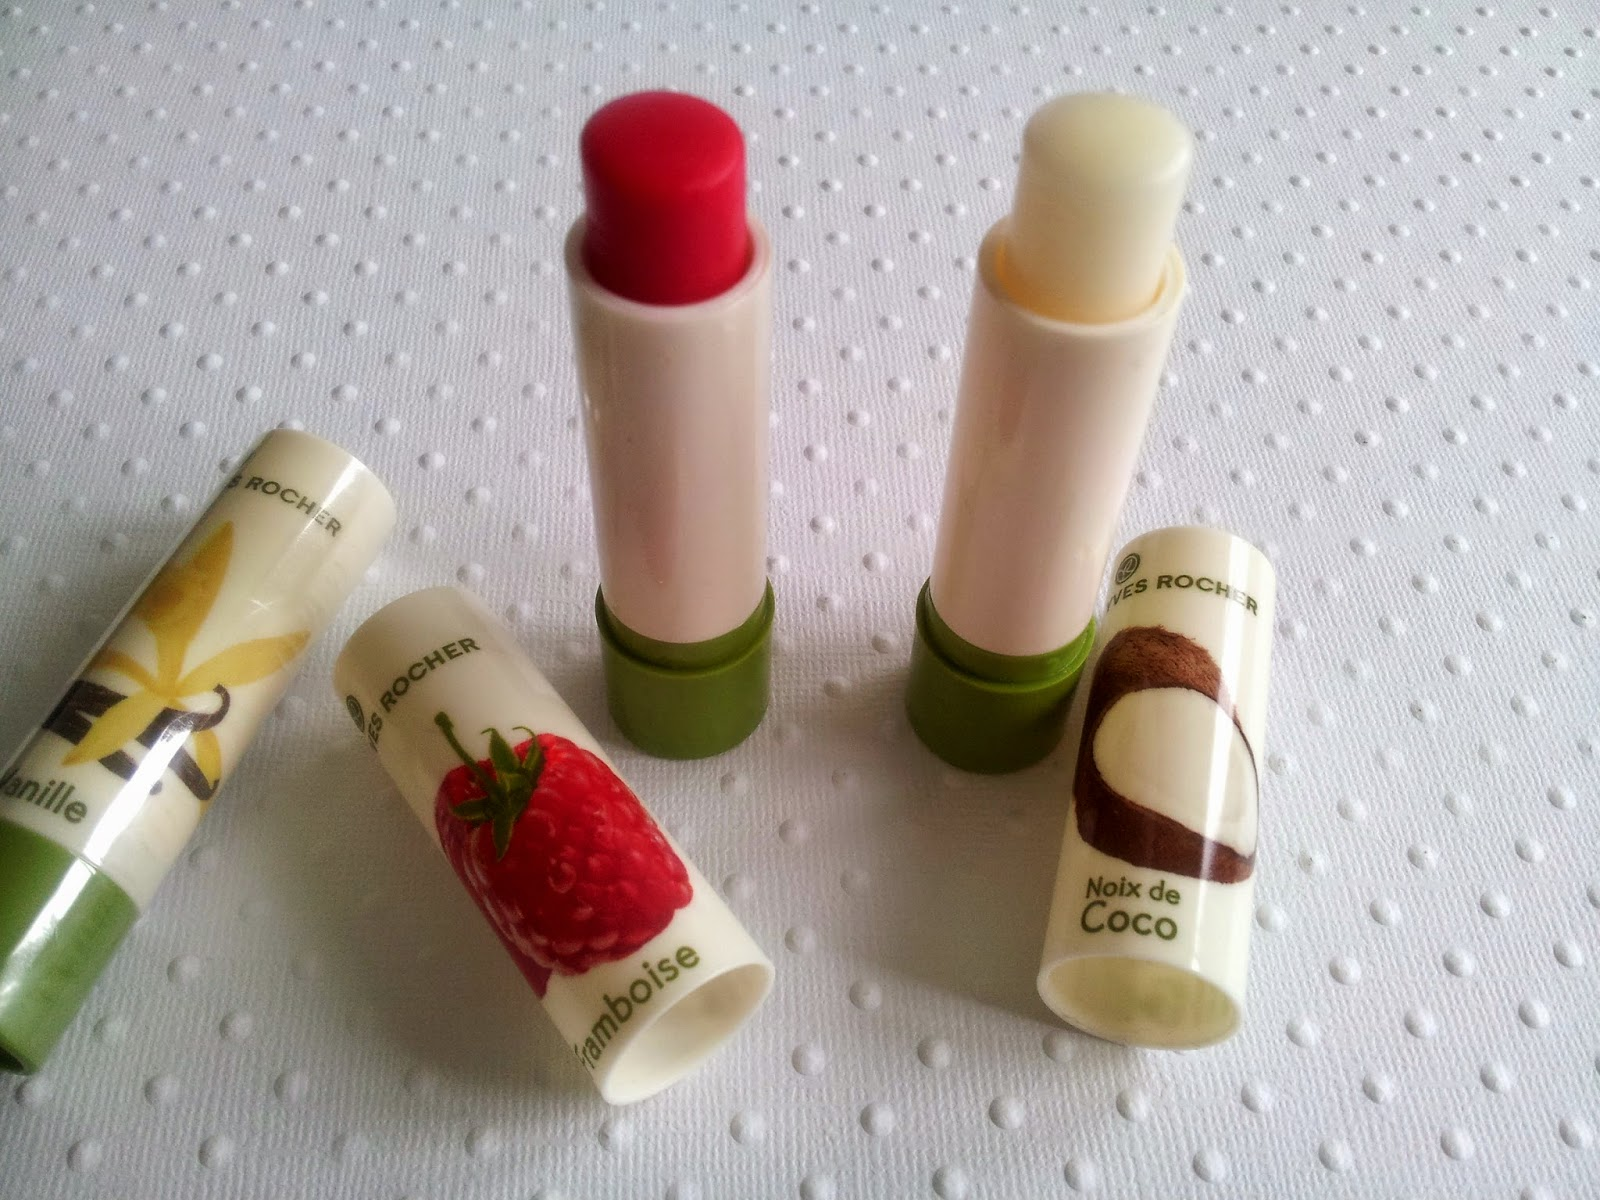 baume-a-levres-yves-rocher-miss-beaute-addict